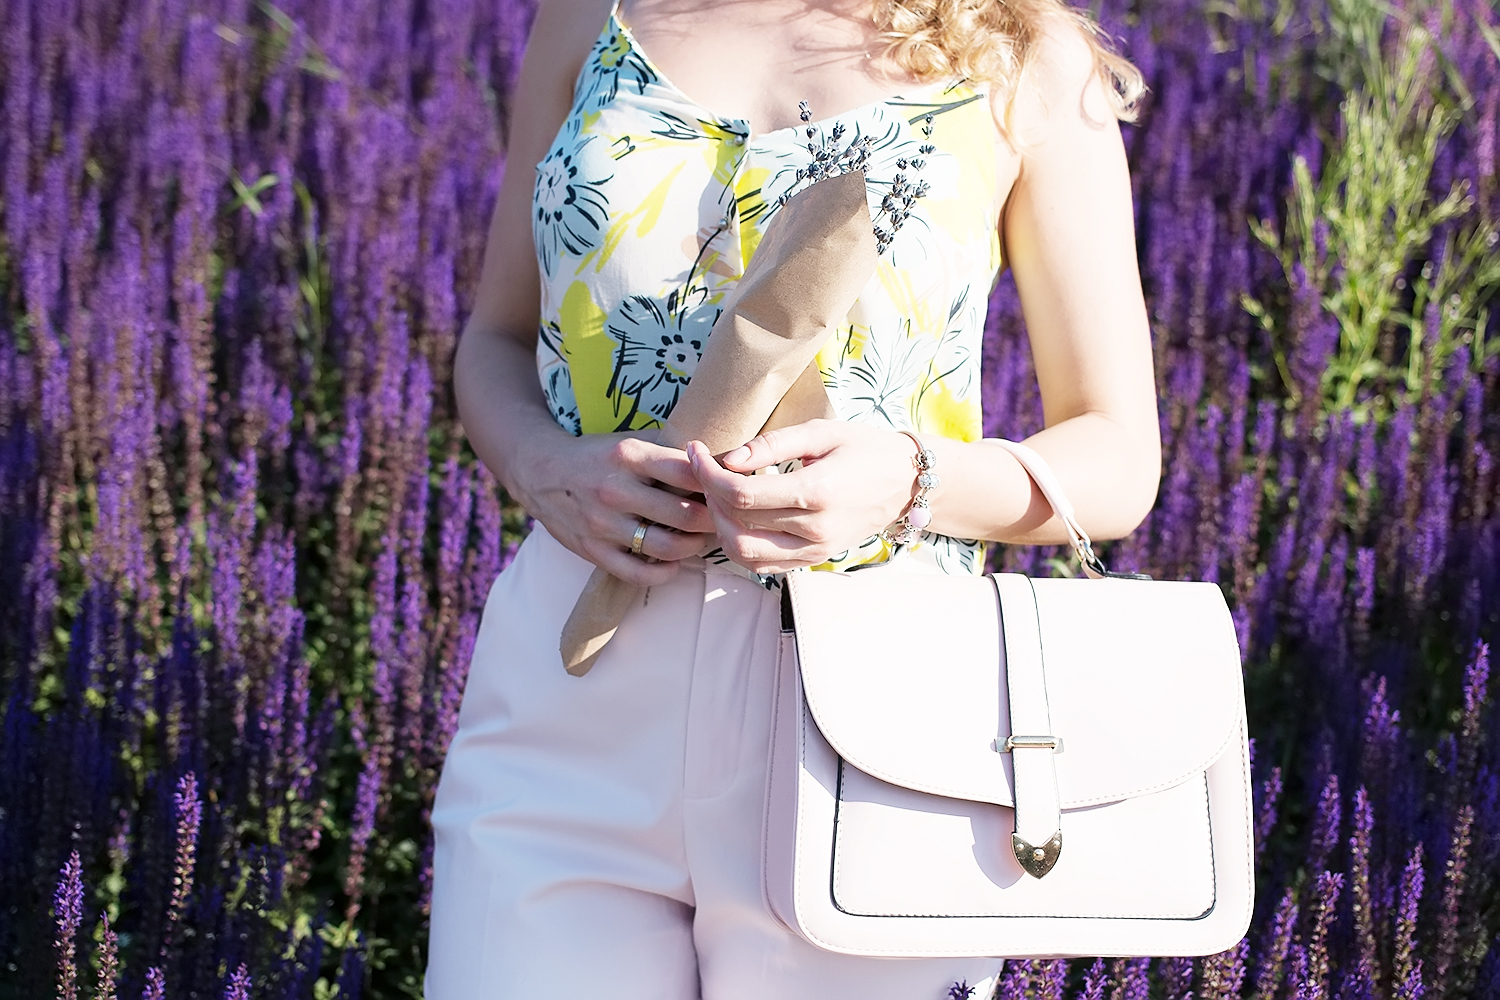 pastel_summer_look_rose_quartz_pants_margarita_maslova